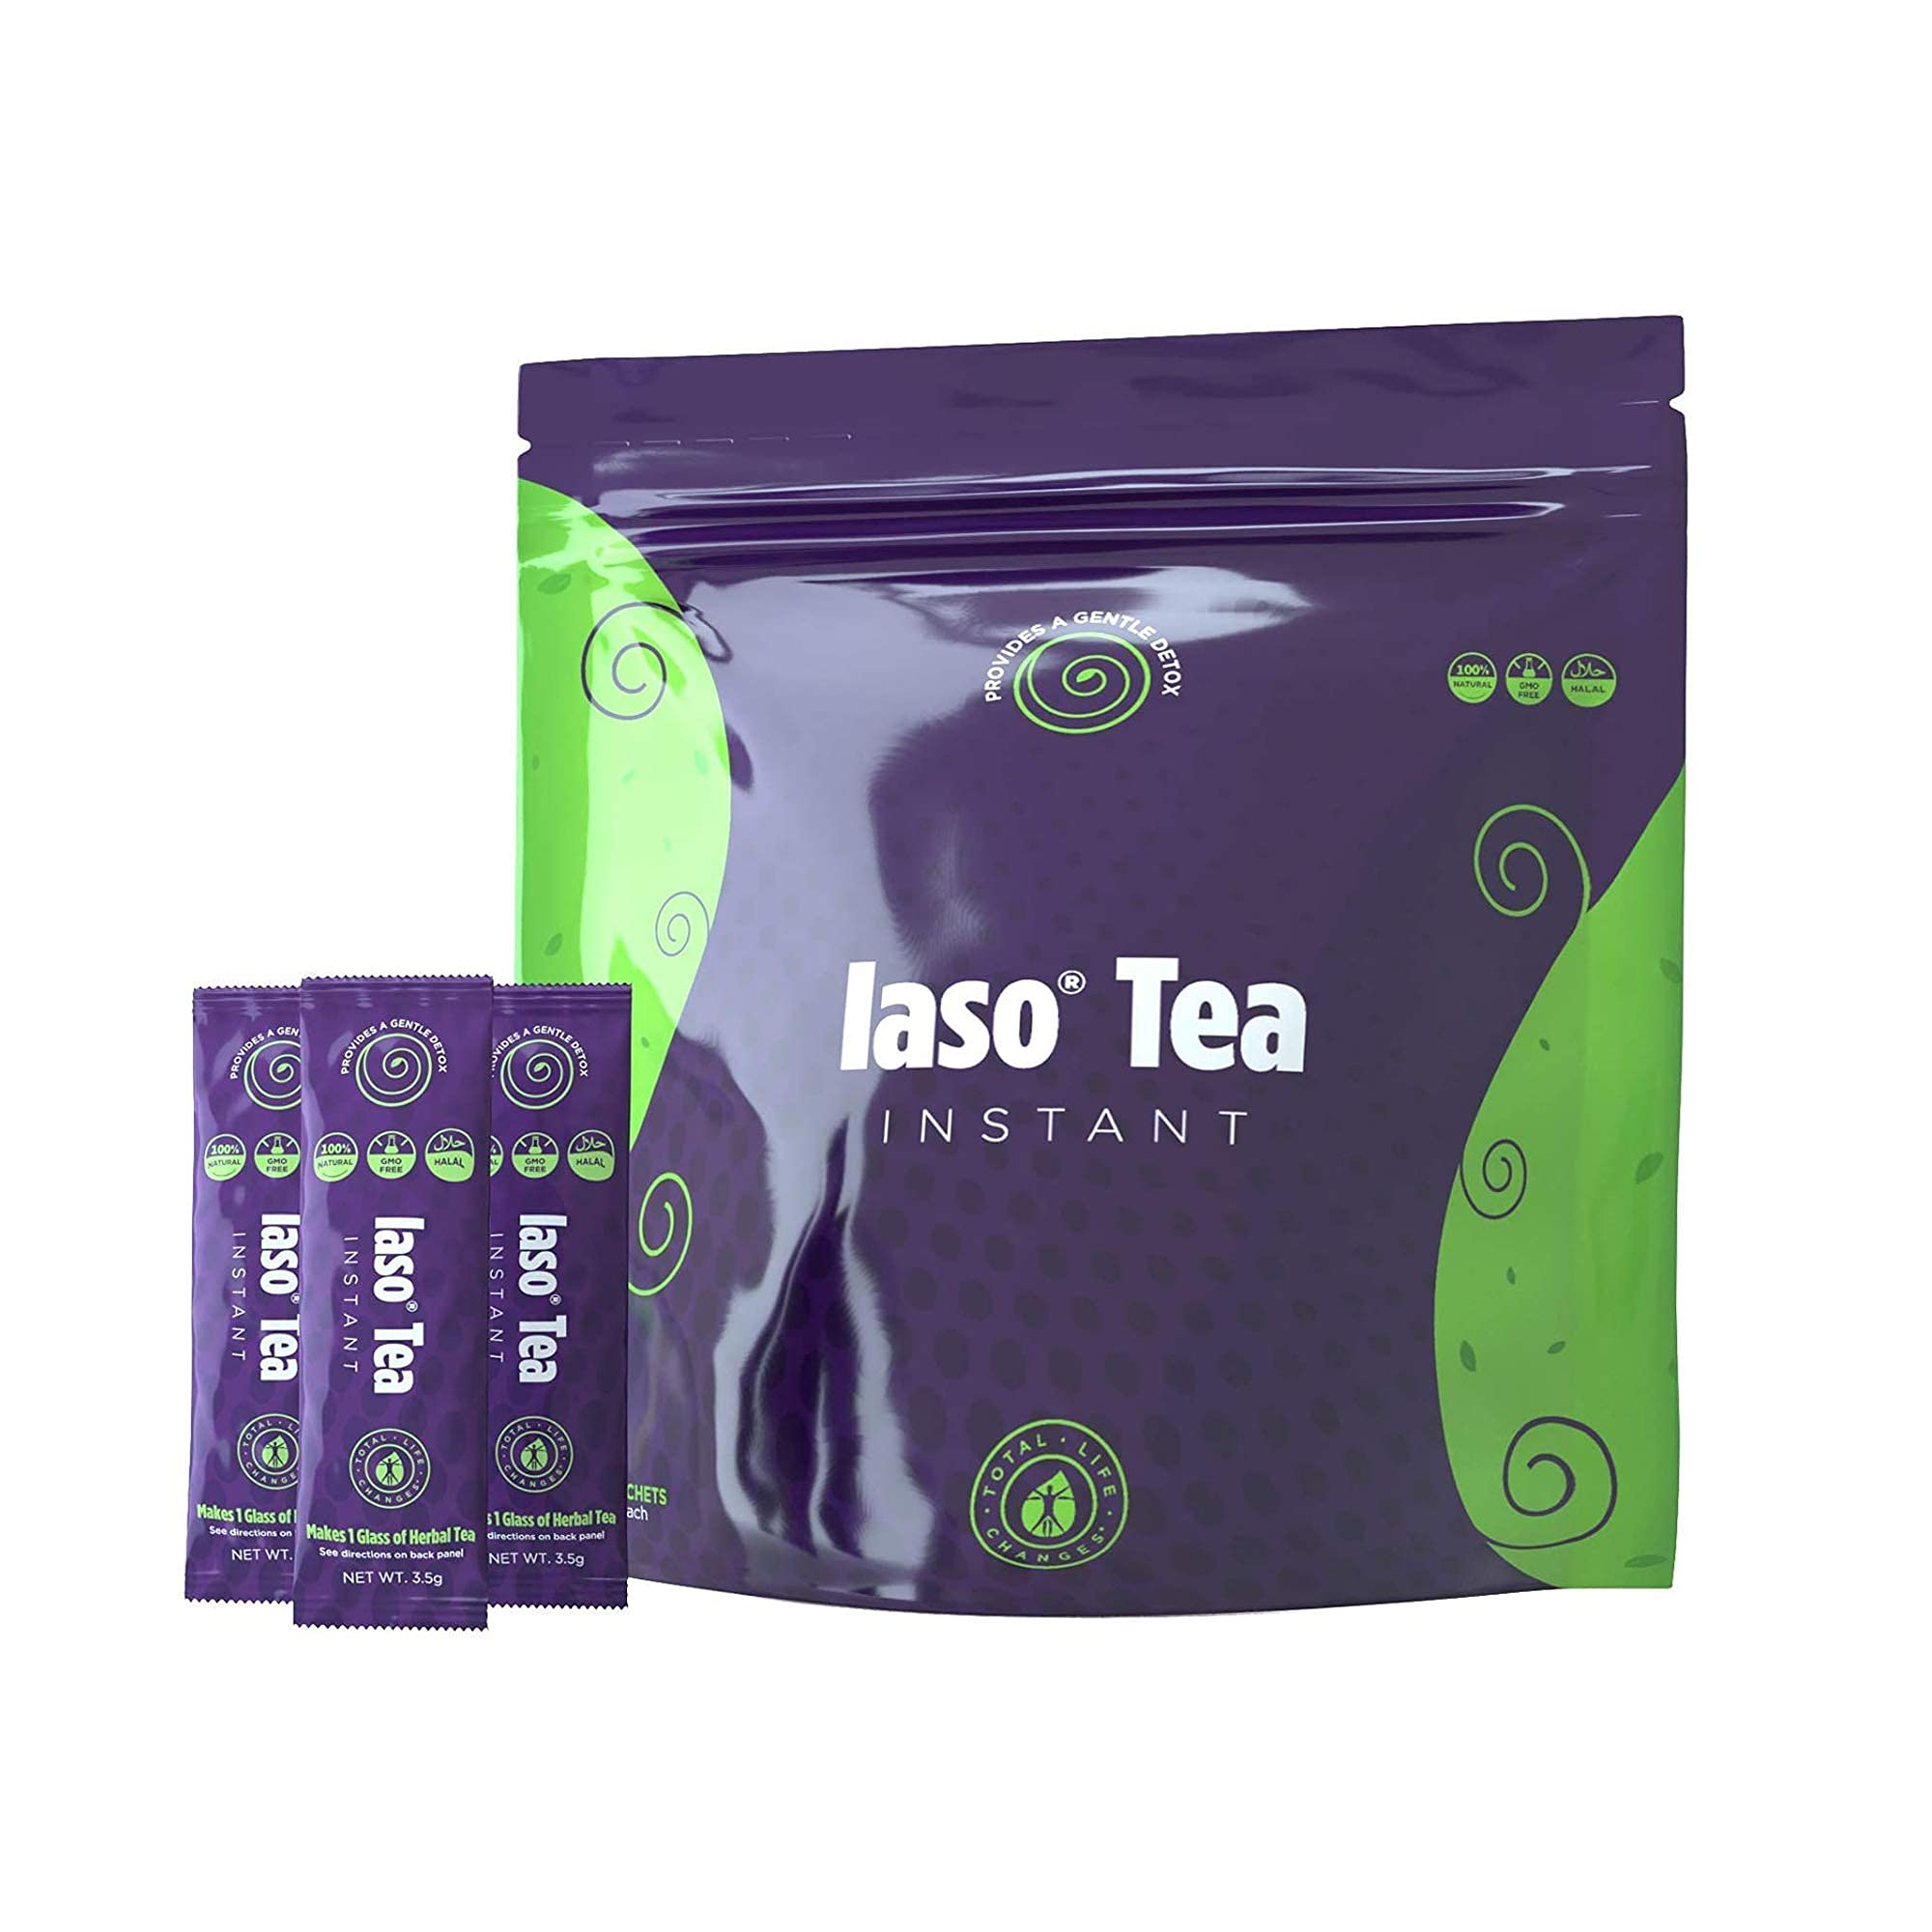 TLC Total Life Changes IASO Natural Detox Instant Herbal Tea - Expiration Date on The Pack Means Month/Year - 25 Count (Pack of 1)